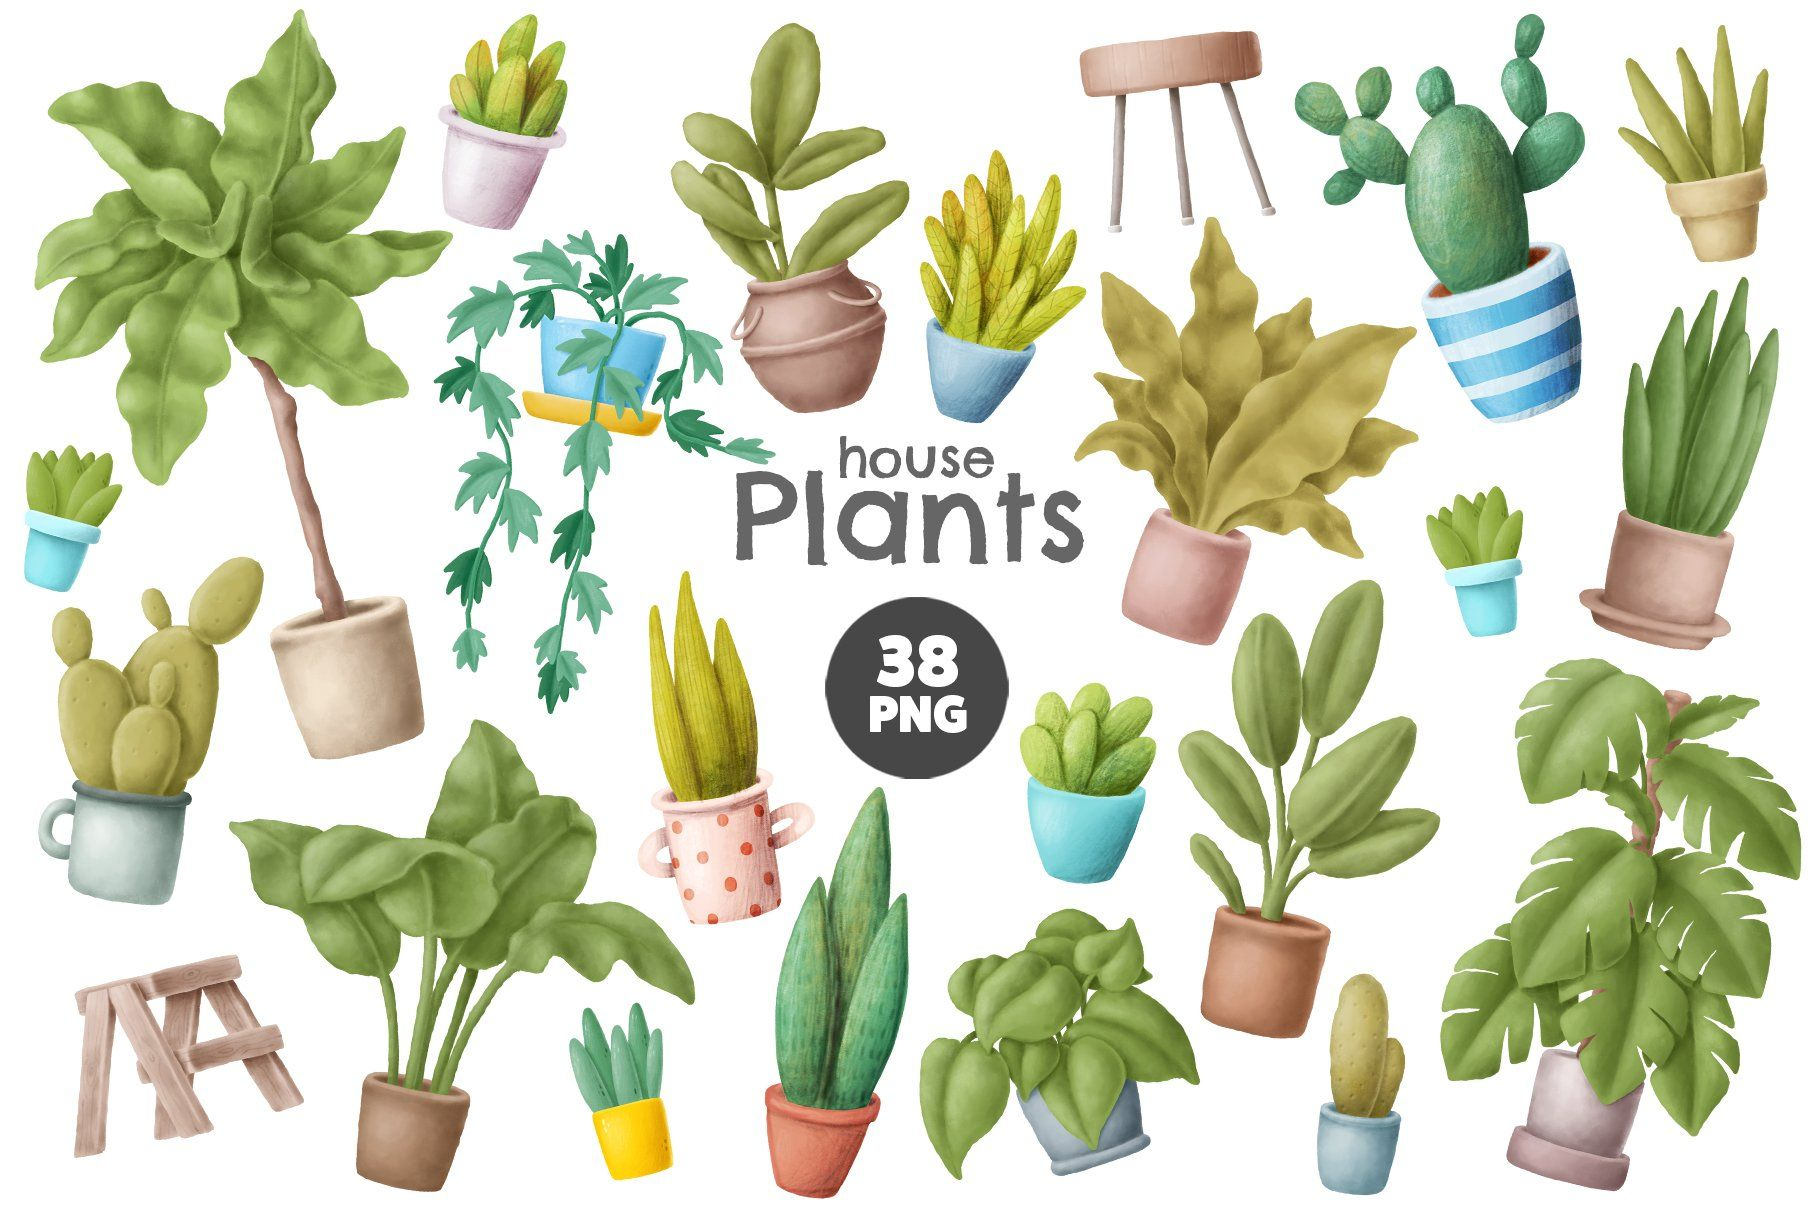 Home Plants Clipart By An Kle 2 On Creativemarket Clip Art Etsy Nursery Patterns